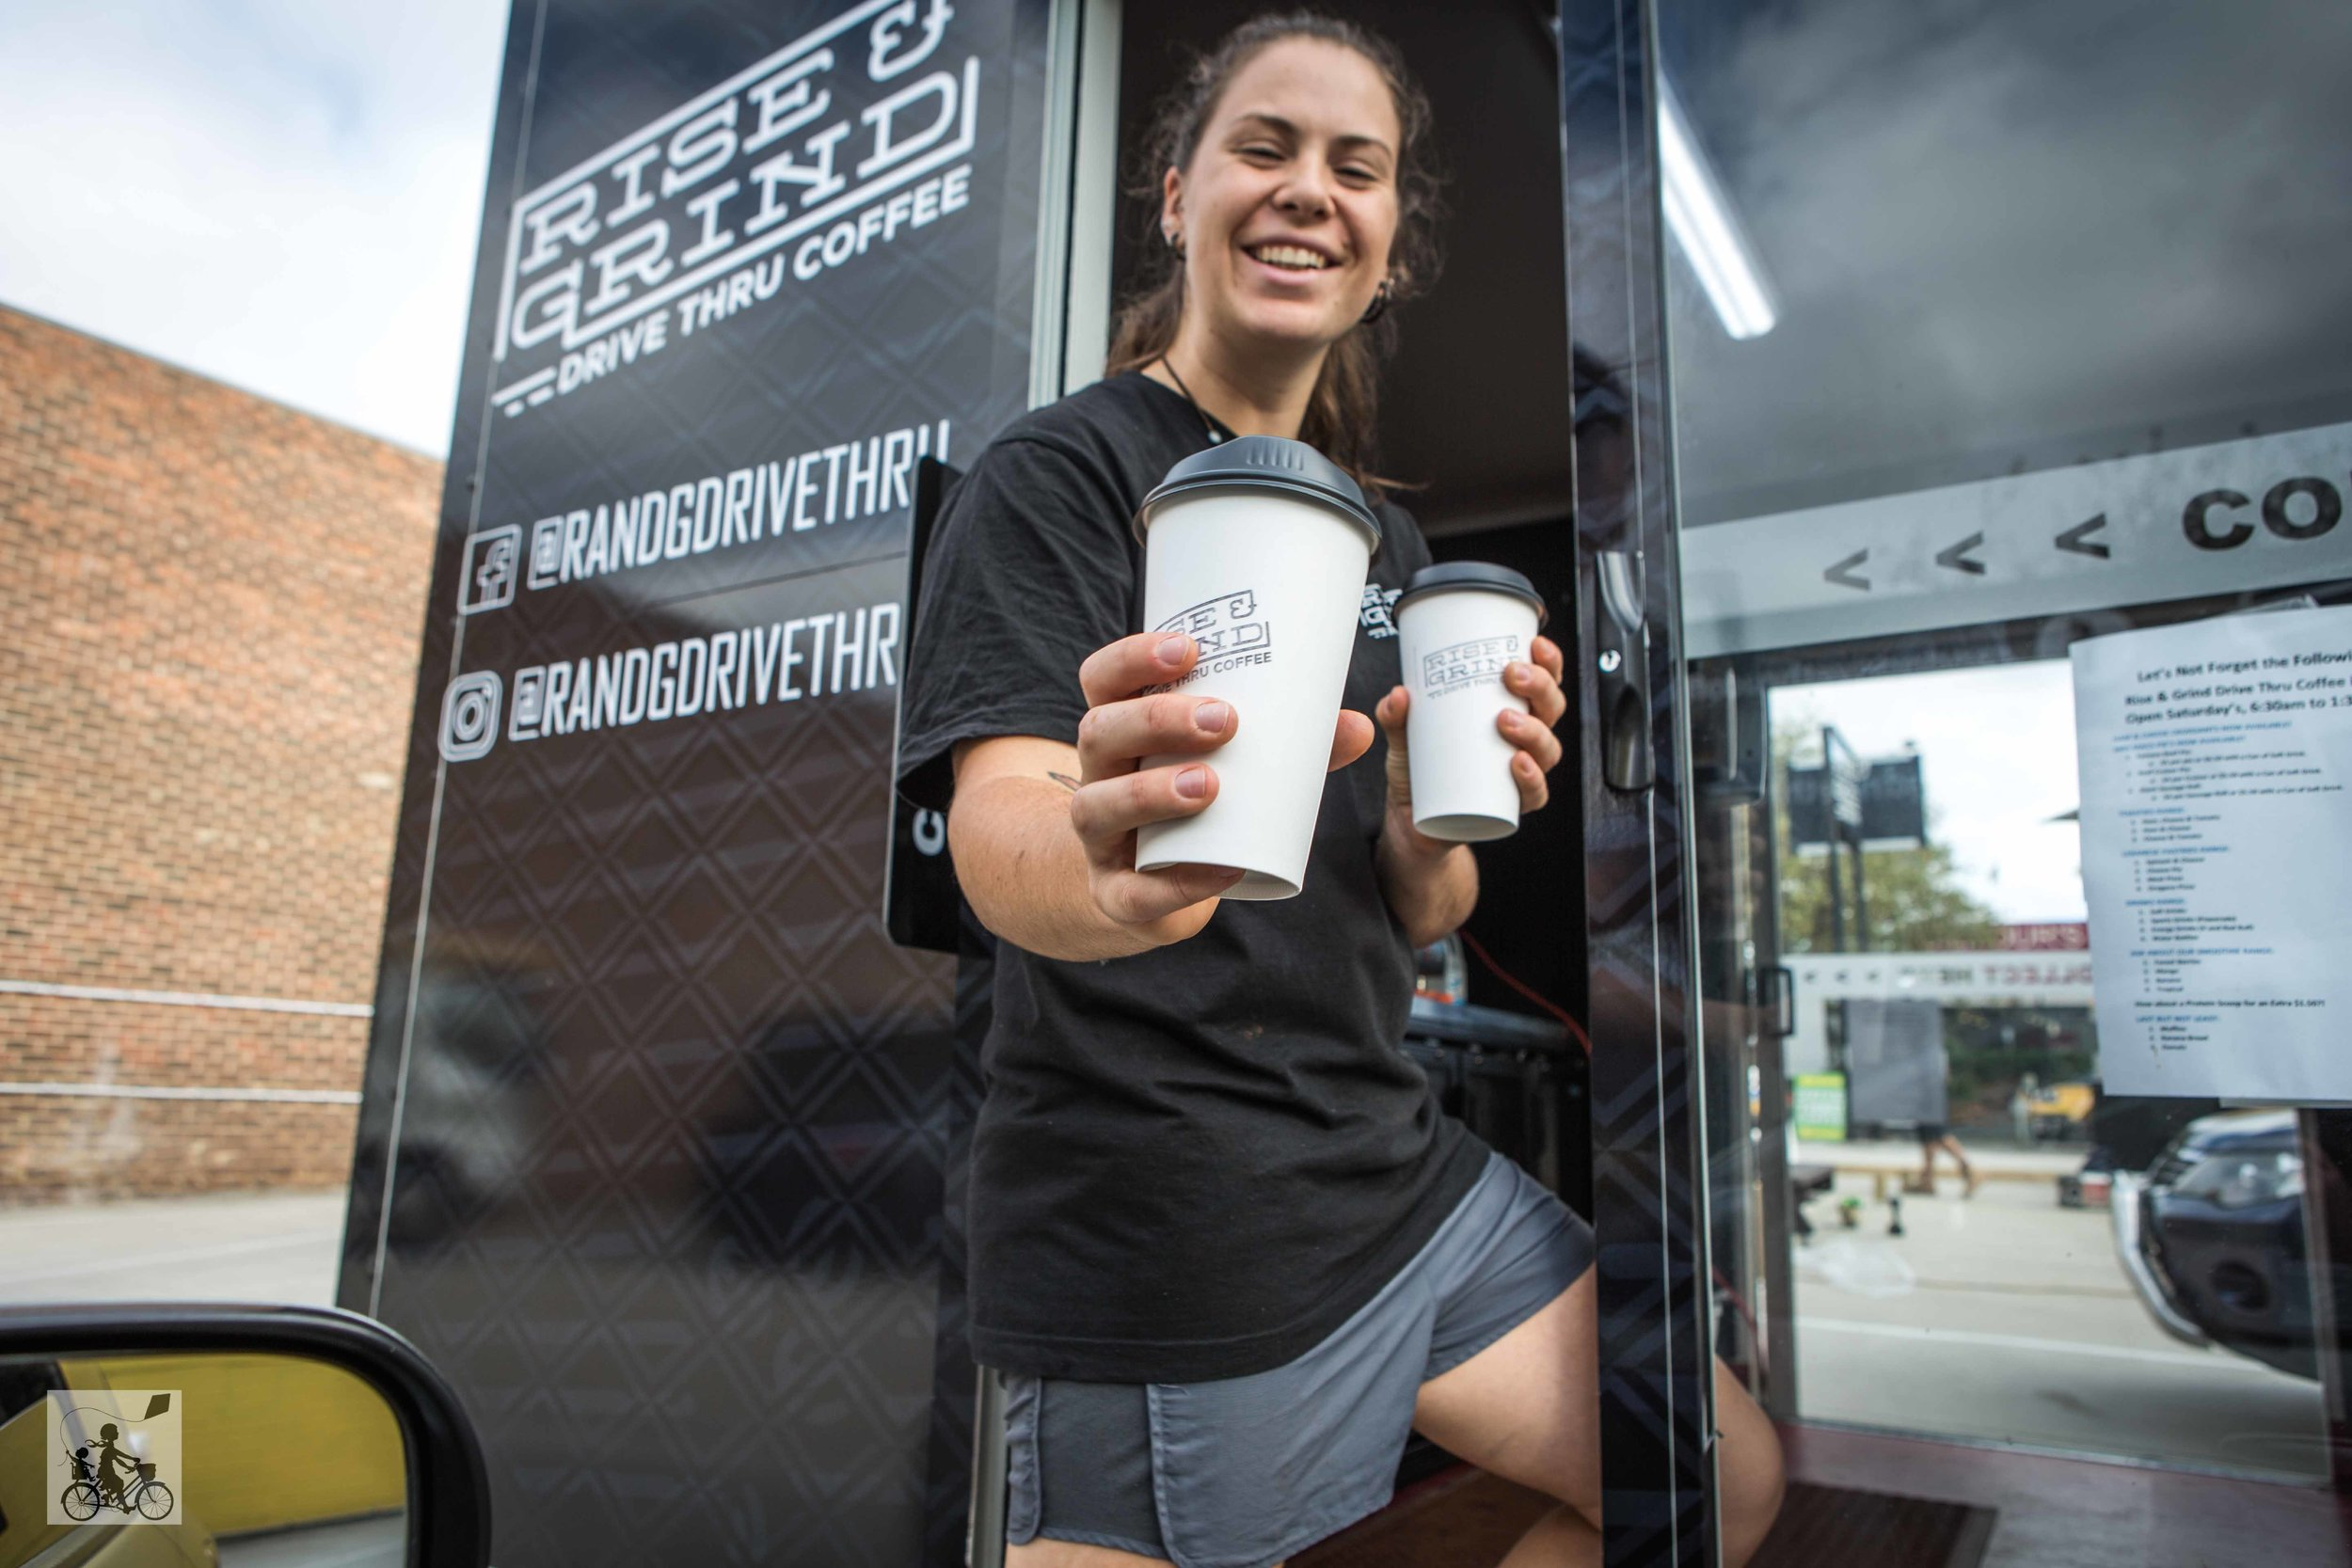 Mamma Knows East - Rise and Grind Drive Thru Coffee Mitcham (8 of 11).jpg